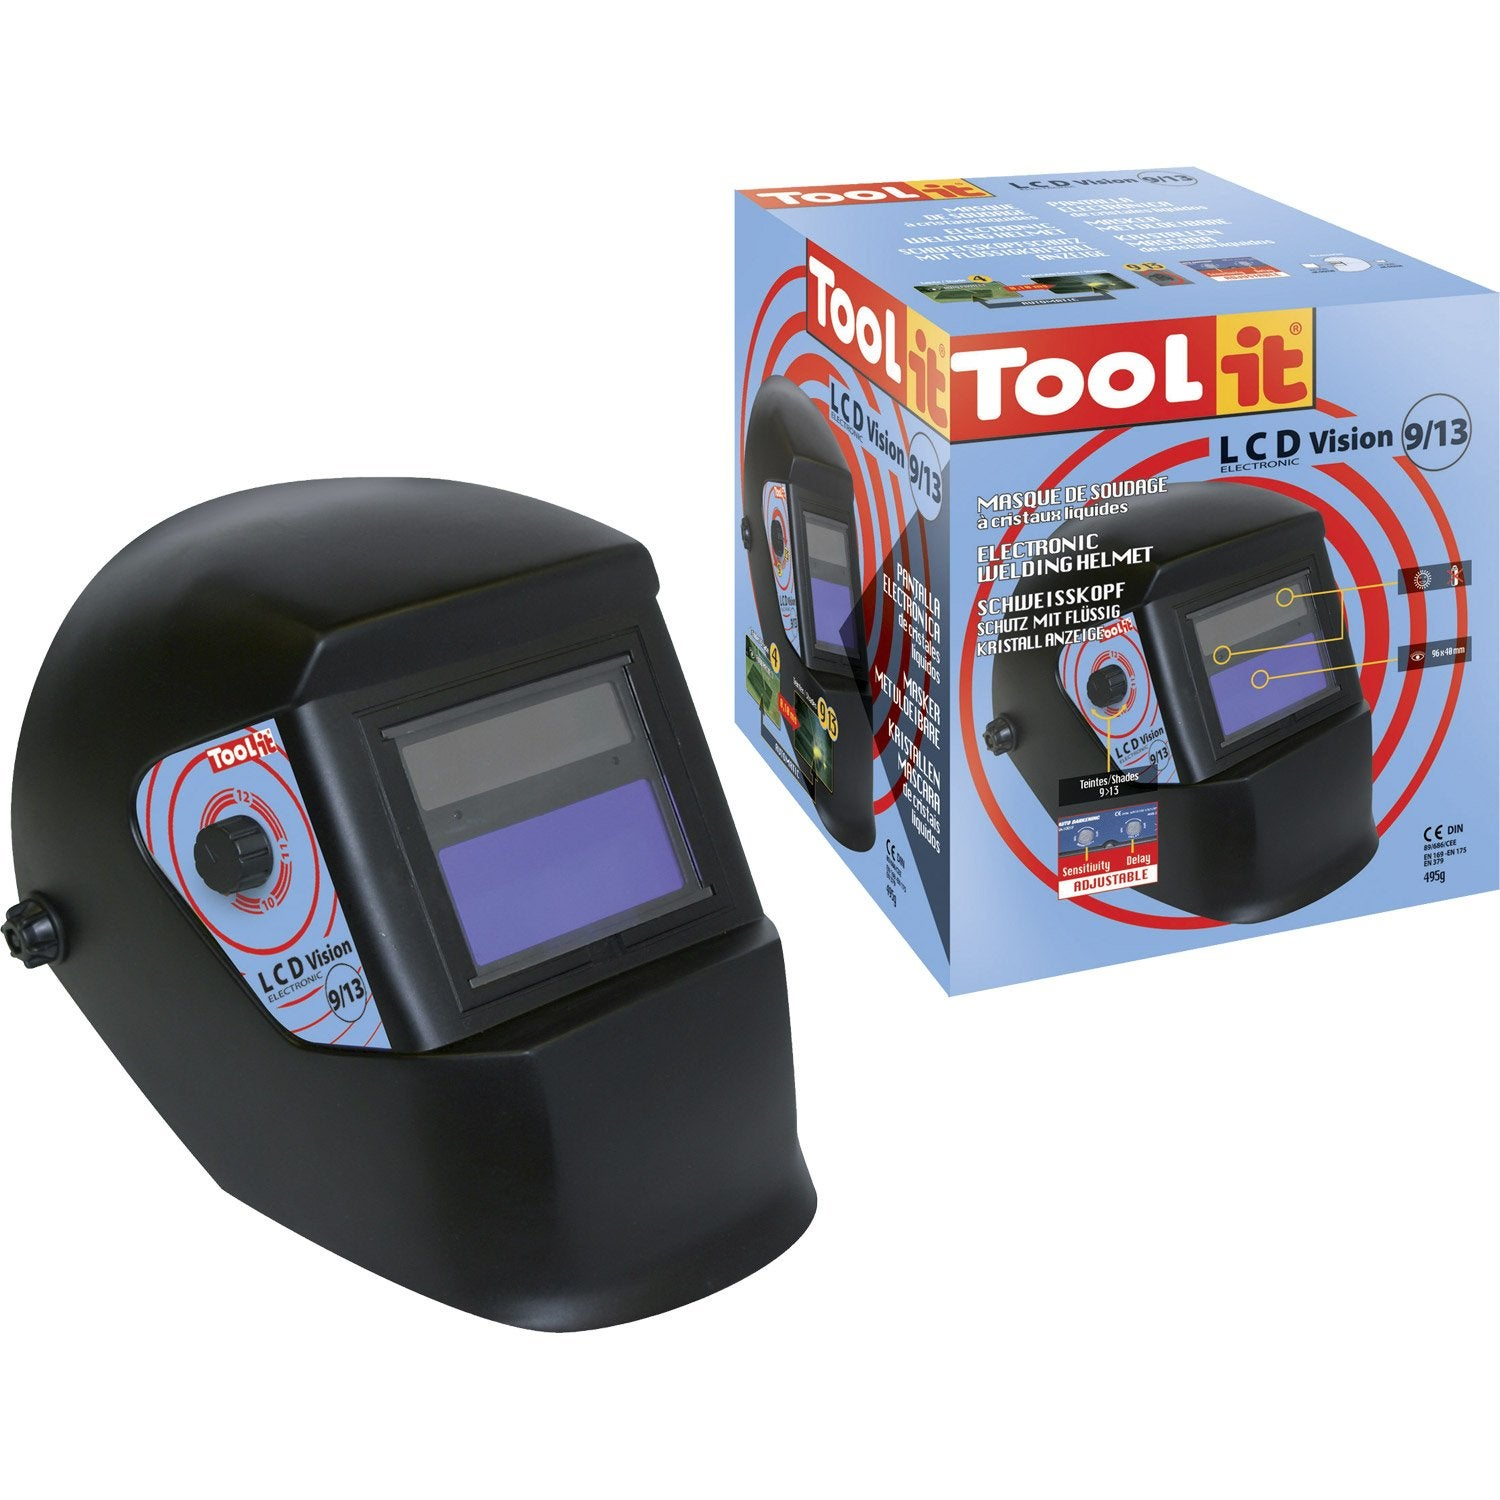 Masque de soudeur automatique tool it lcd vision 9 13 leroy merlin - Leroy merlin lorient ...